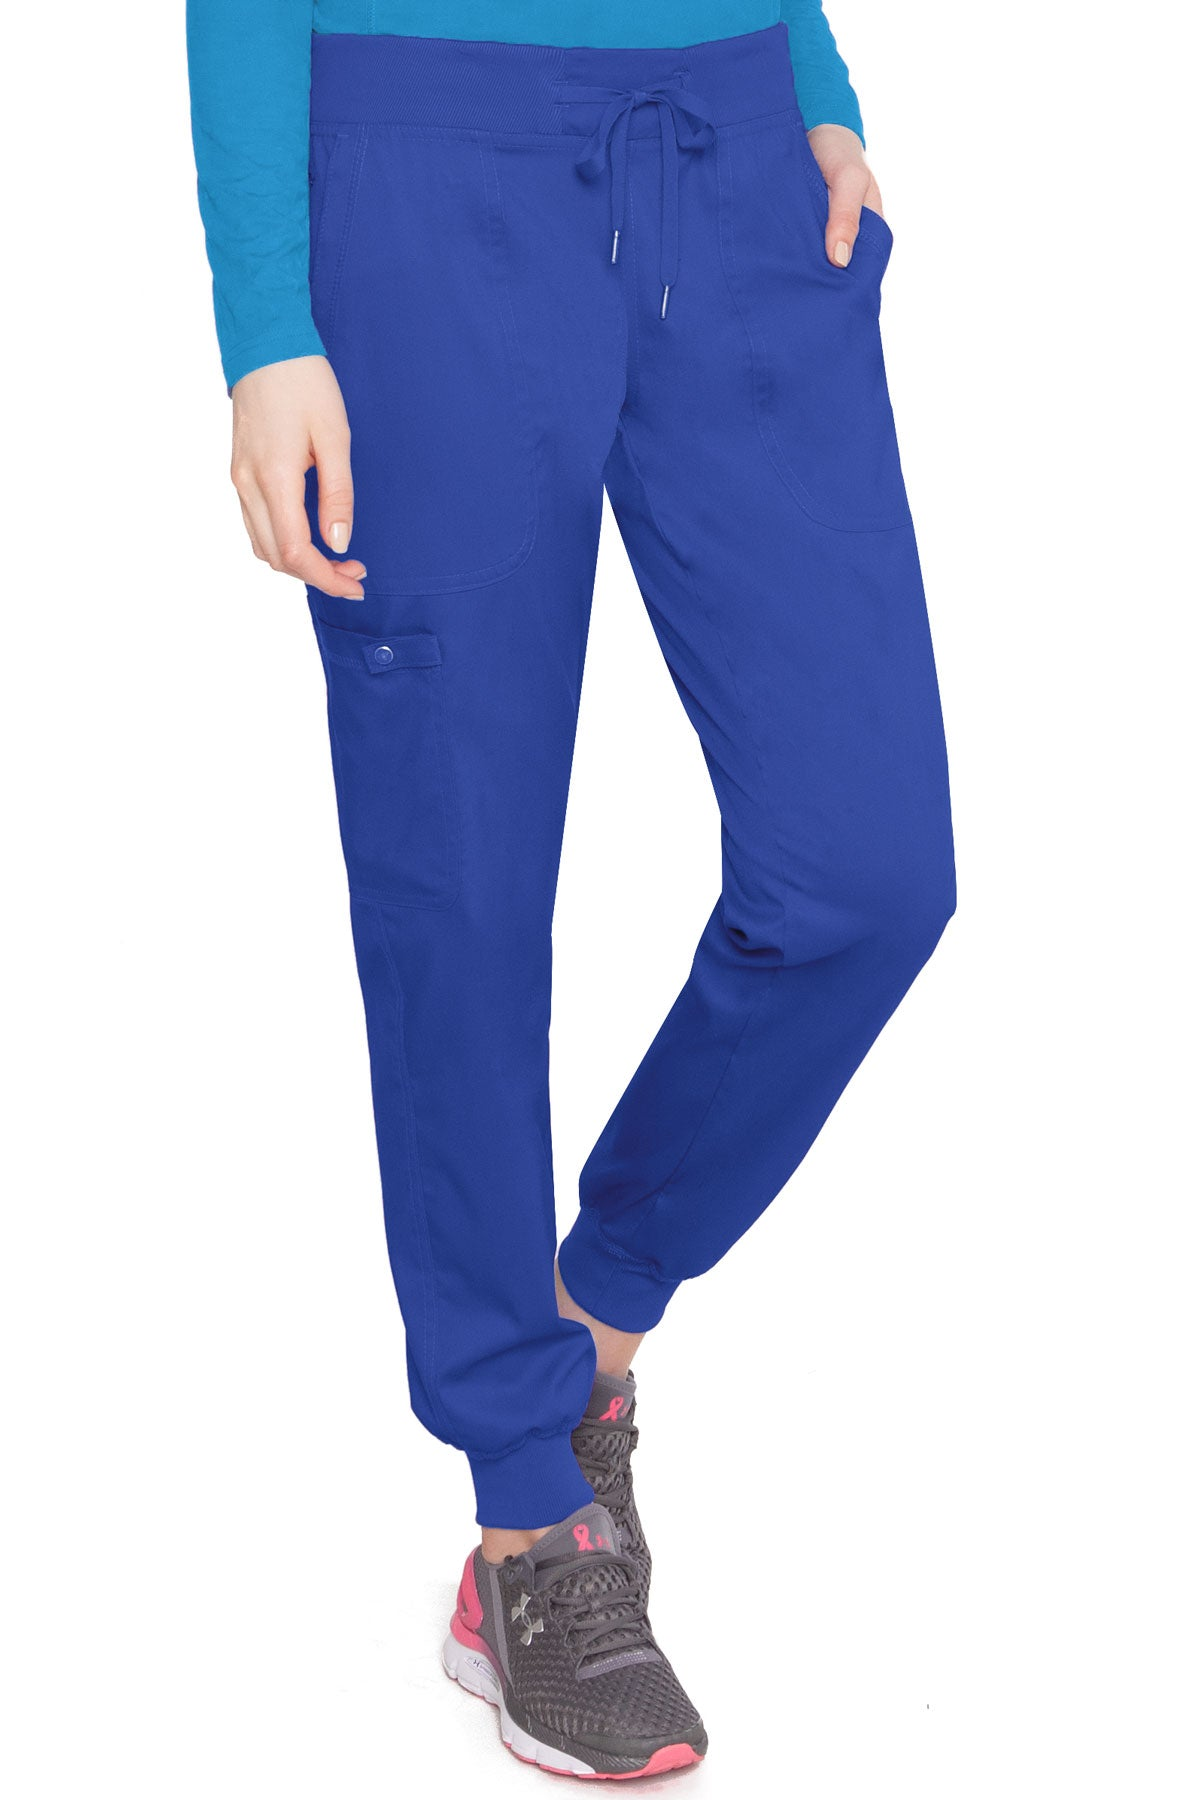 Med Couture Touch 7710 Petite Jogger Yoga Pant